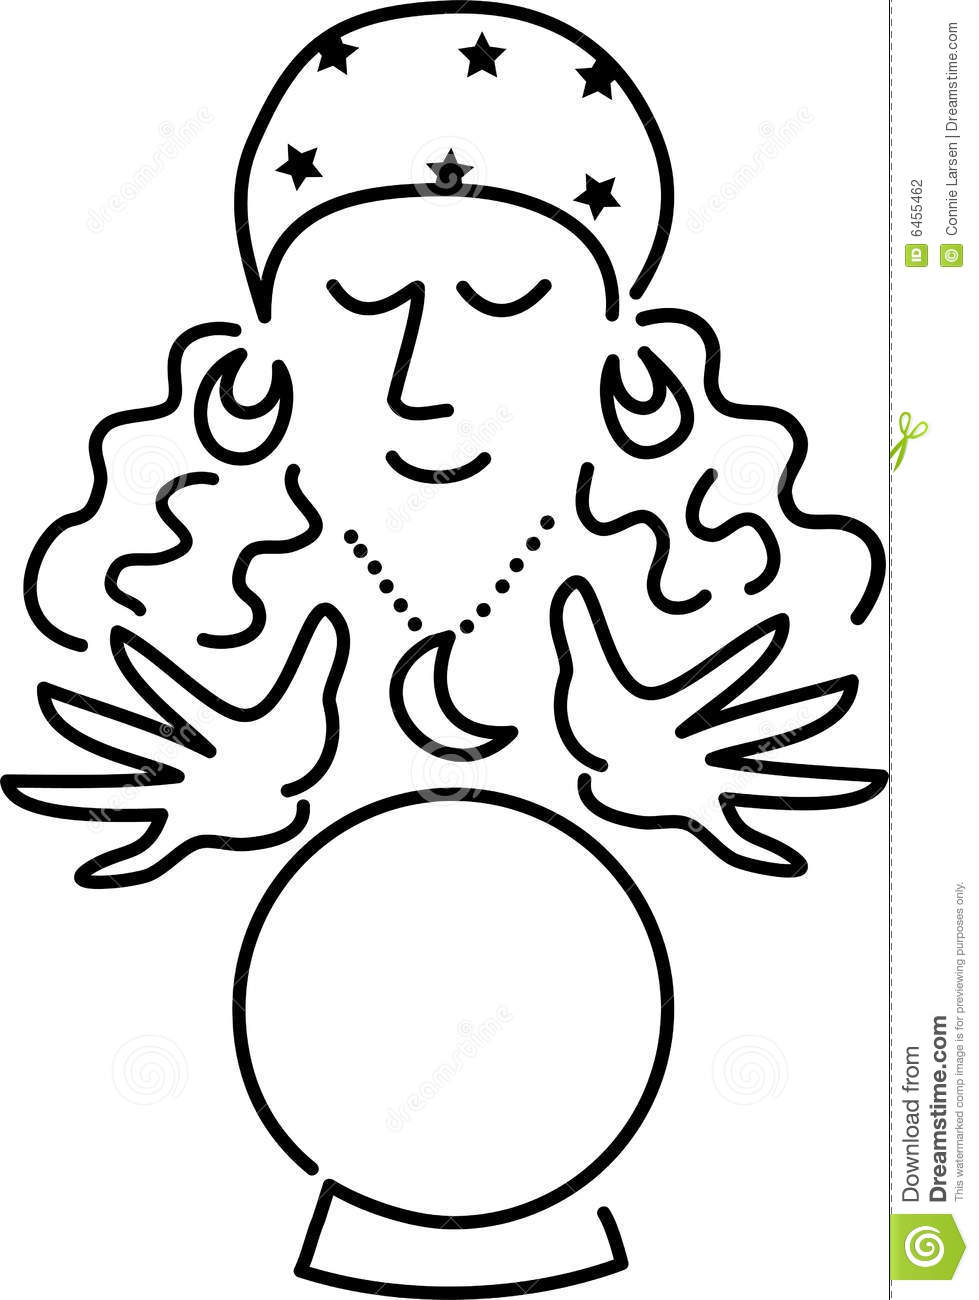 Fortune telling clipart.